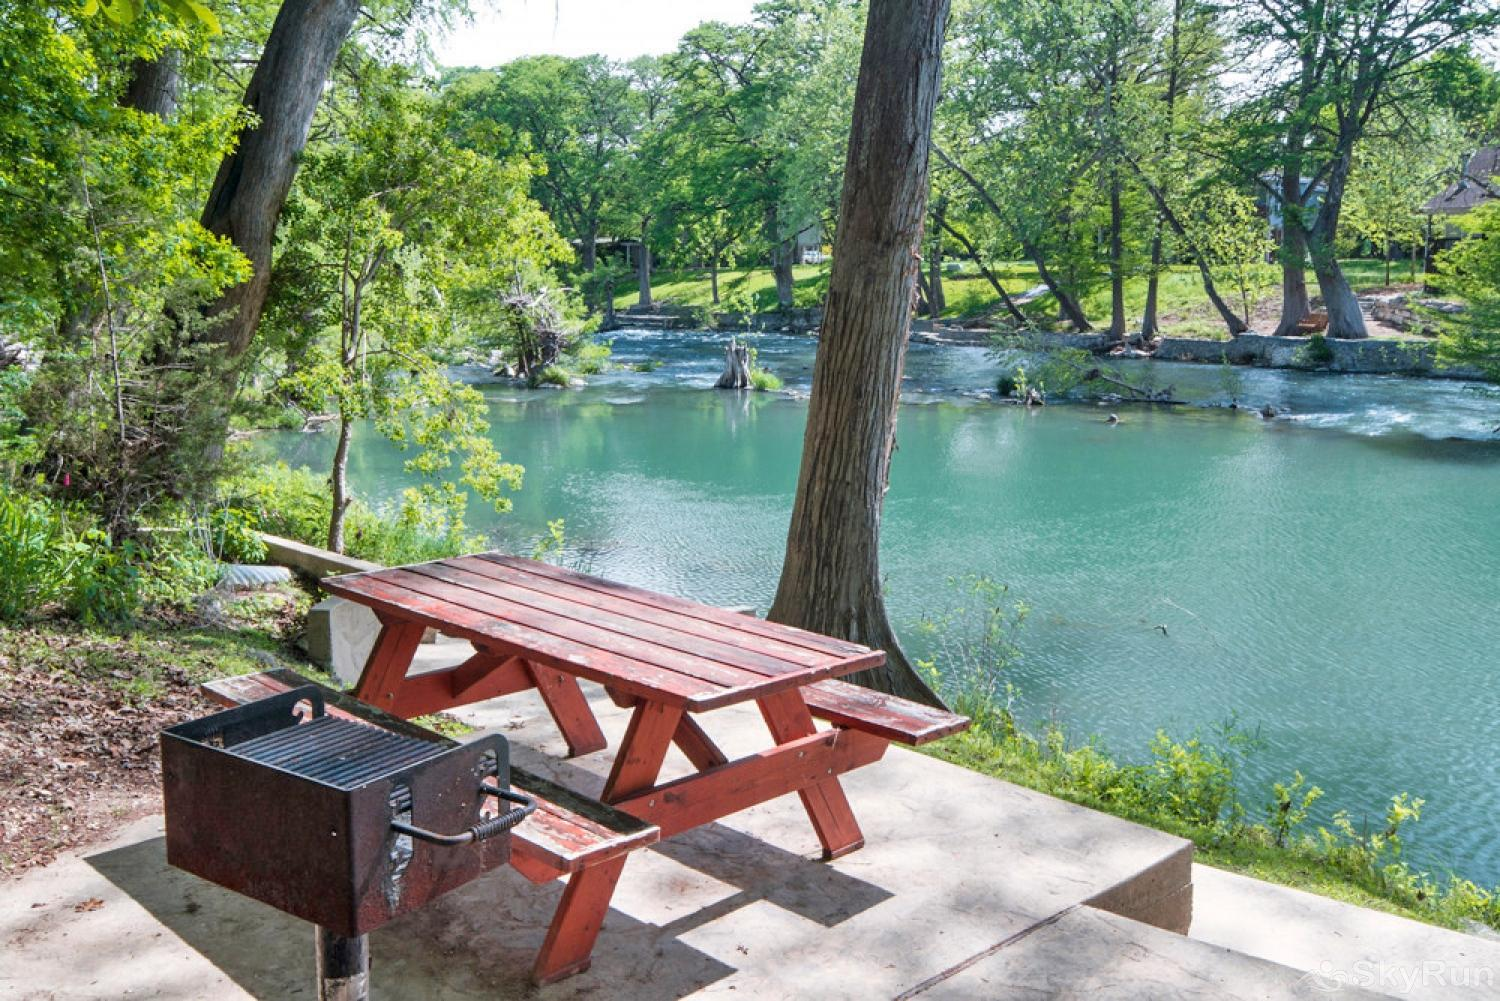 GRUENE GETAWAY Picnic and barbecue area